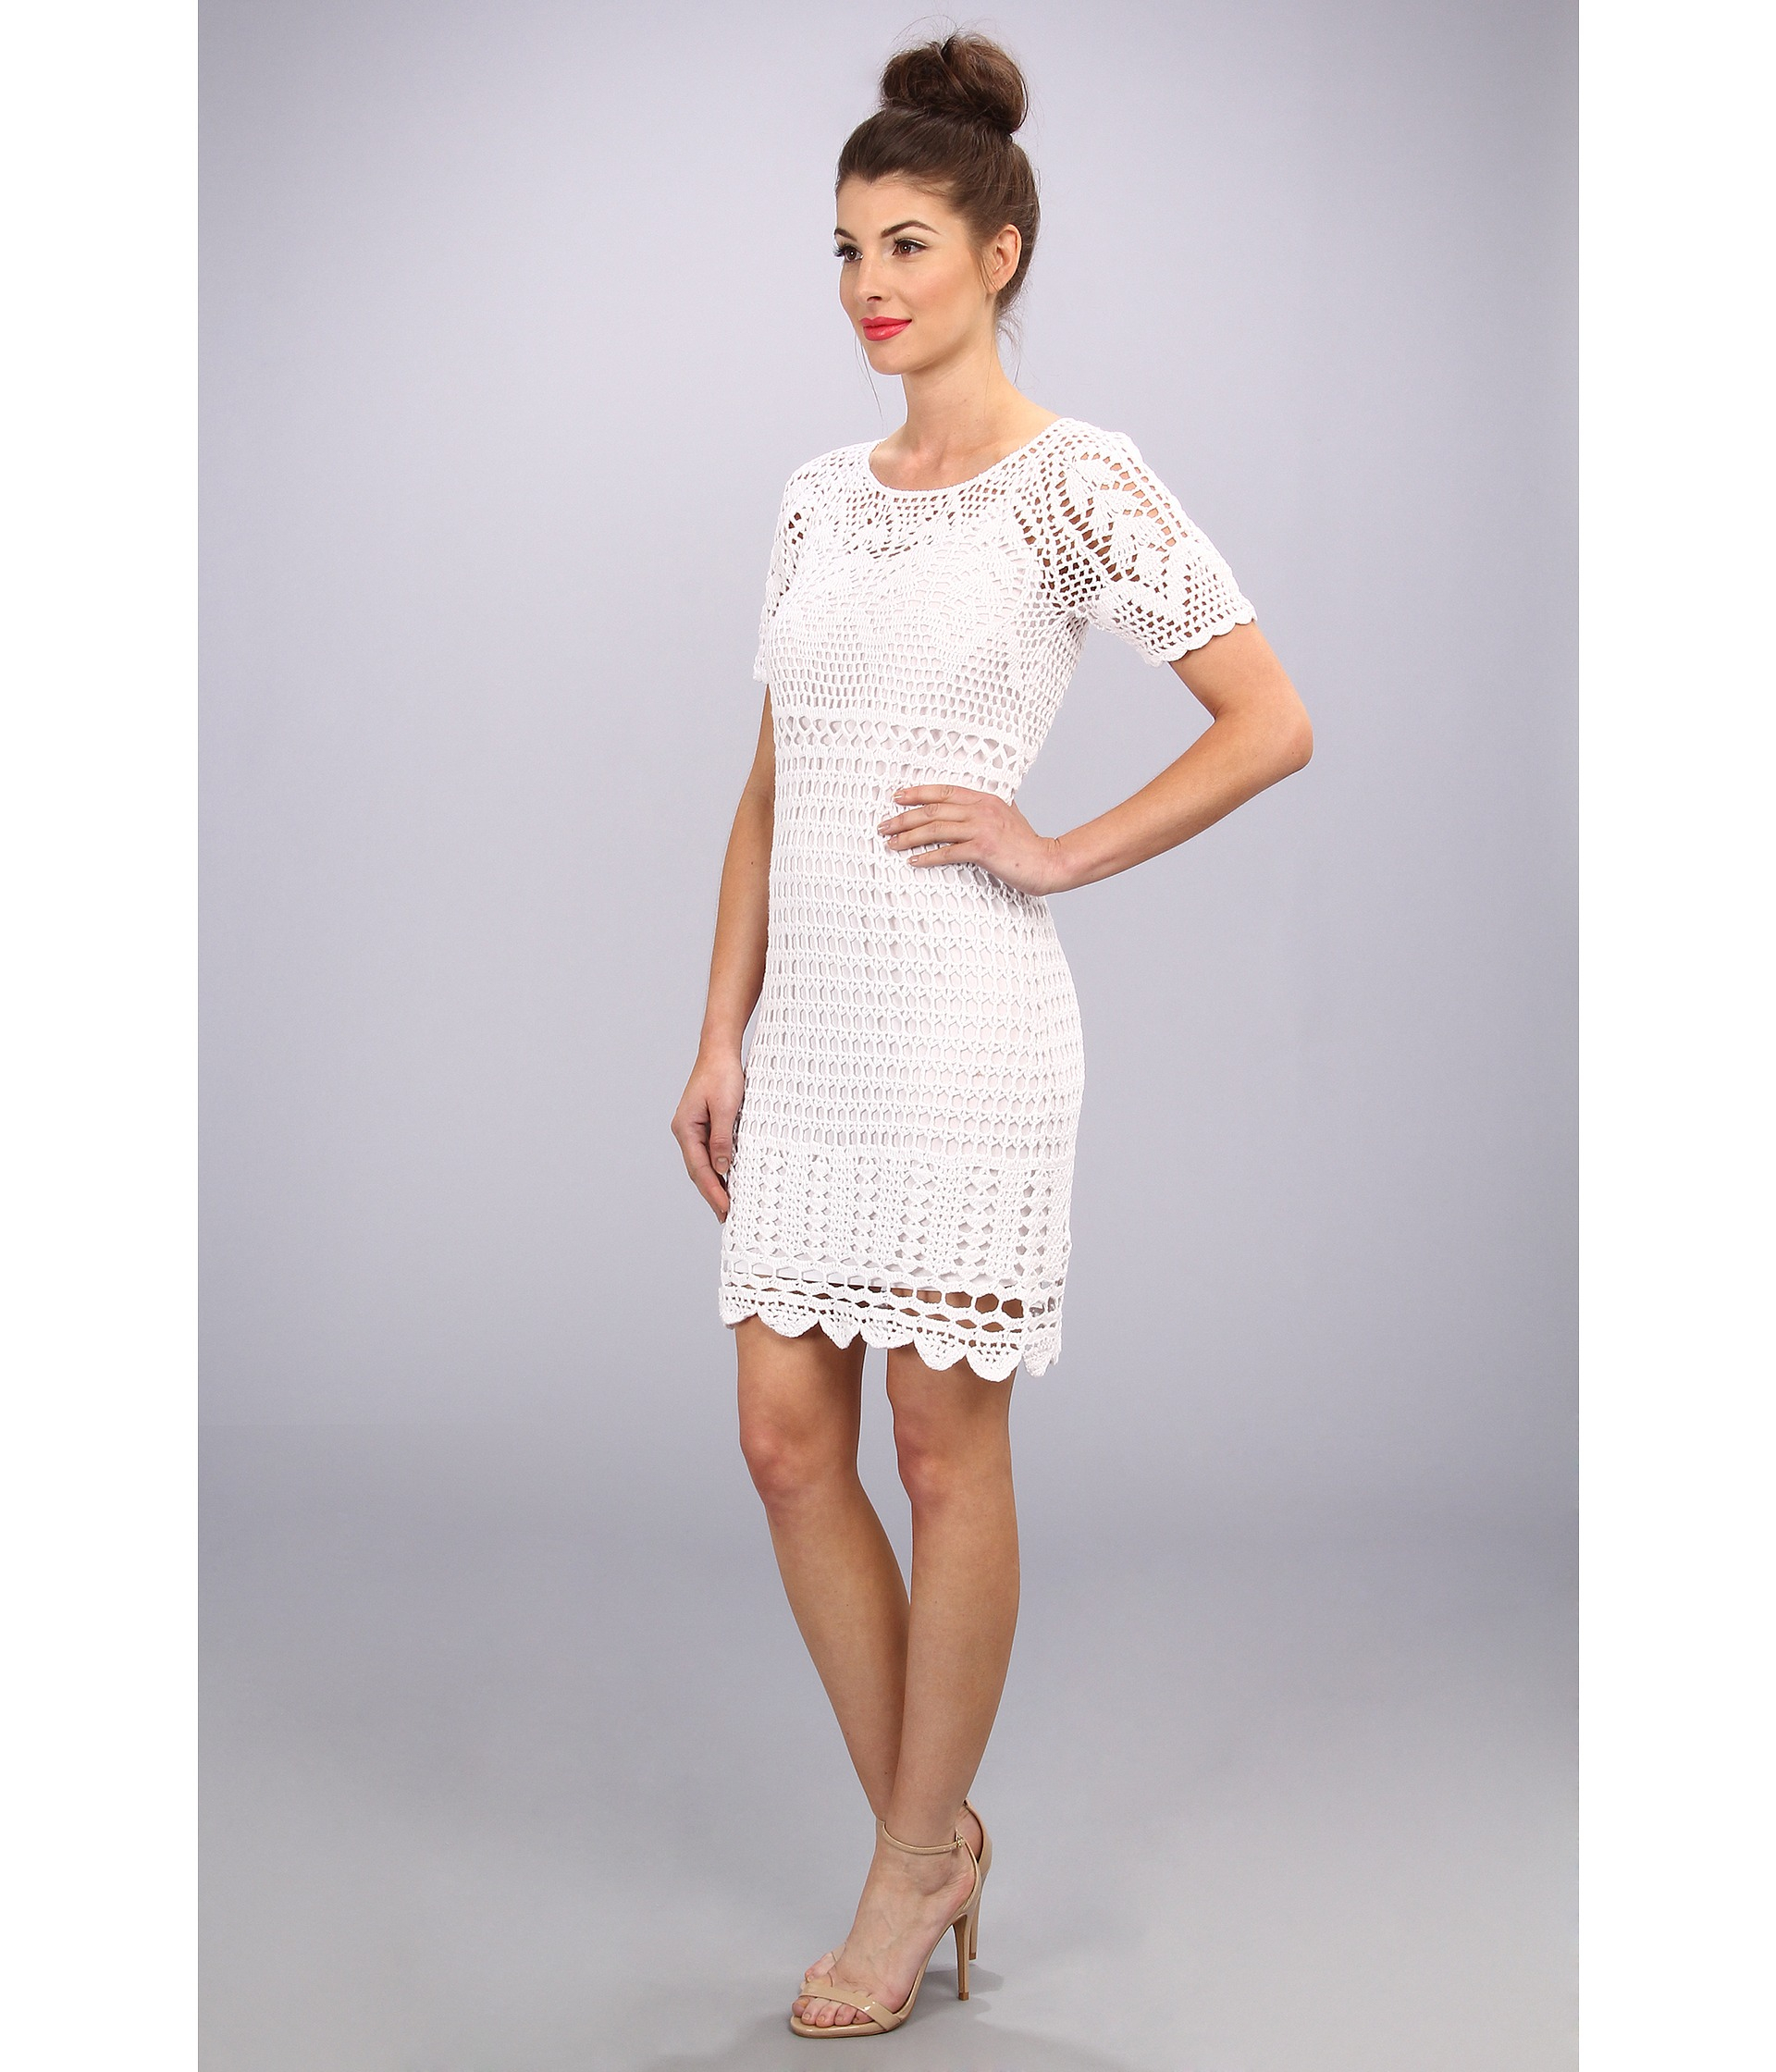 0dbd0fdb447d Lyst - Donna Morgan Short Sleeve Crochet Dress with Open Back in White